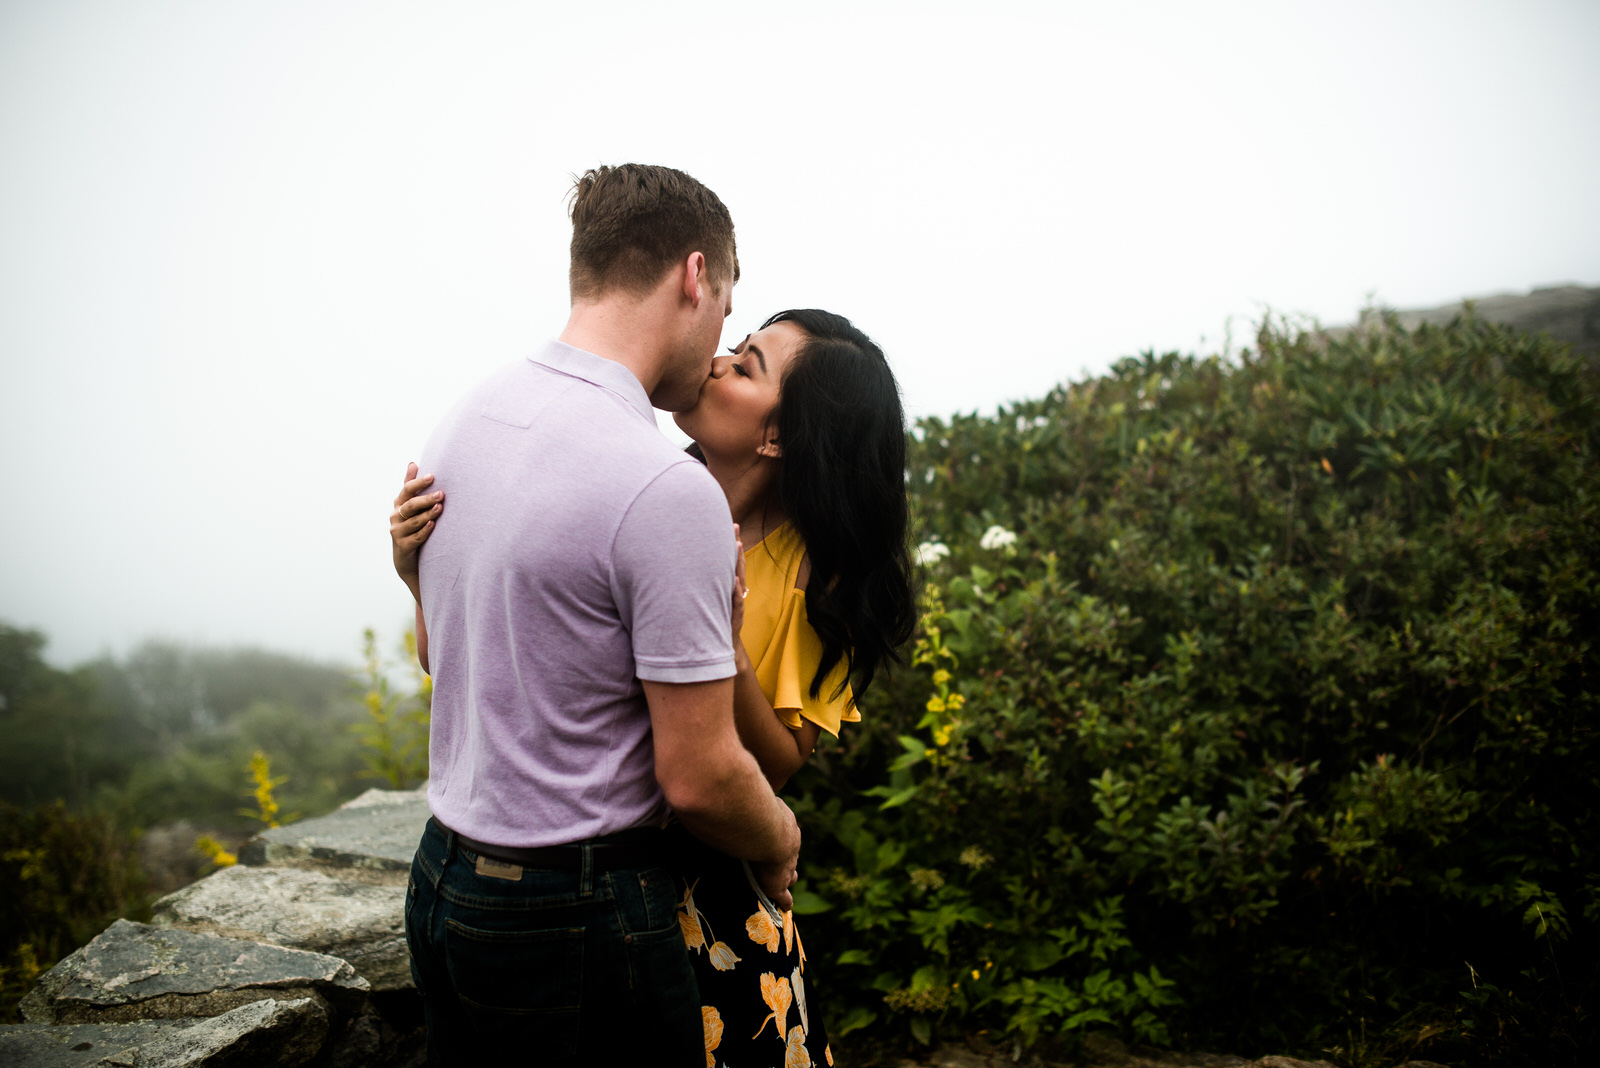 Craggy-Gardens-Engagement-Session-61.jpg